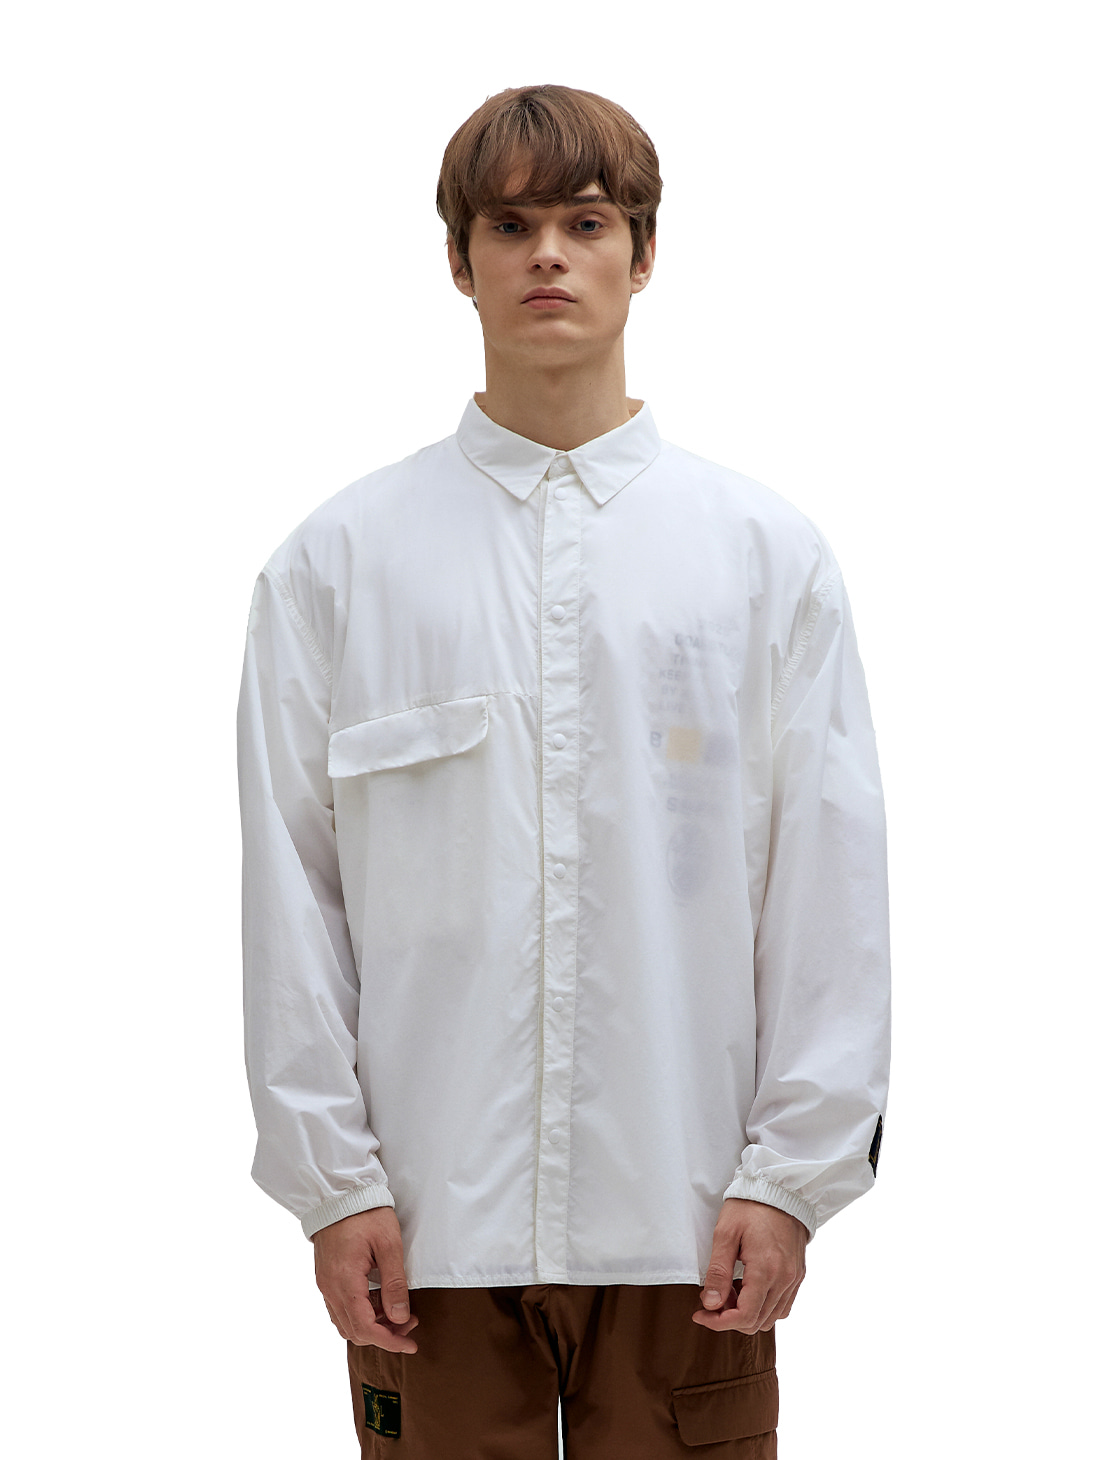 SSFC WINDBREAKER SHIRT - WHITE